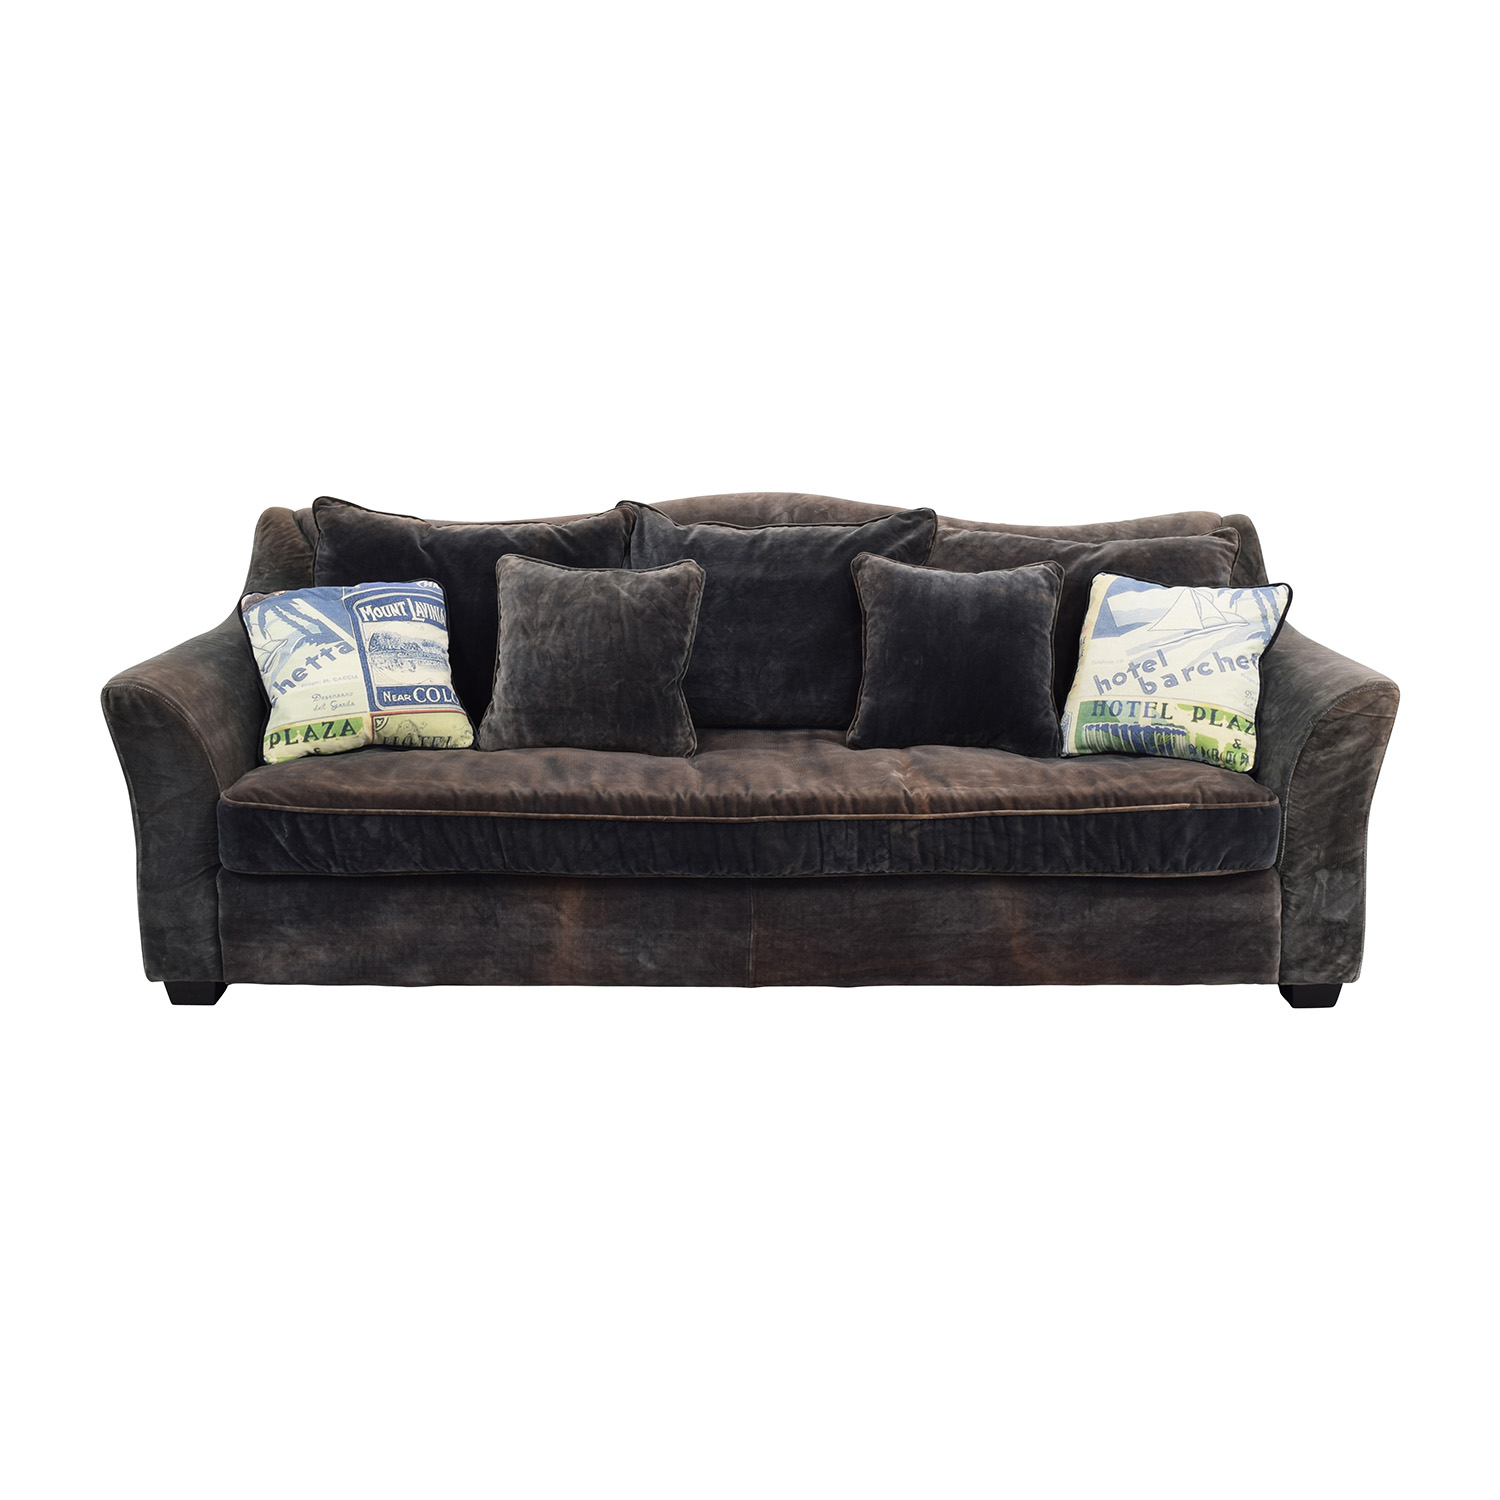 ABC Carpet and Home ABC Carpet & Home Timothy Oulton Grey Sofa for sale